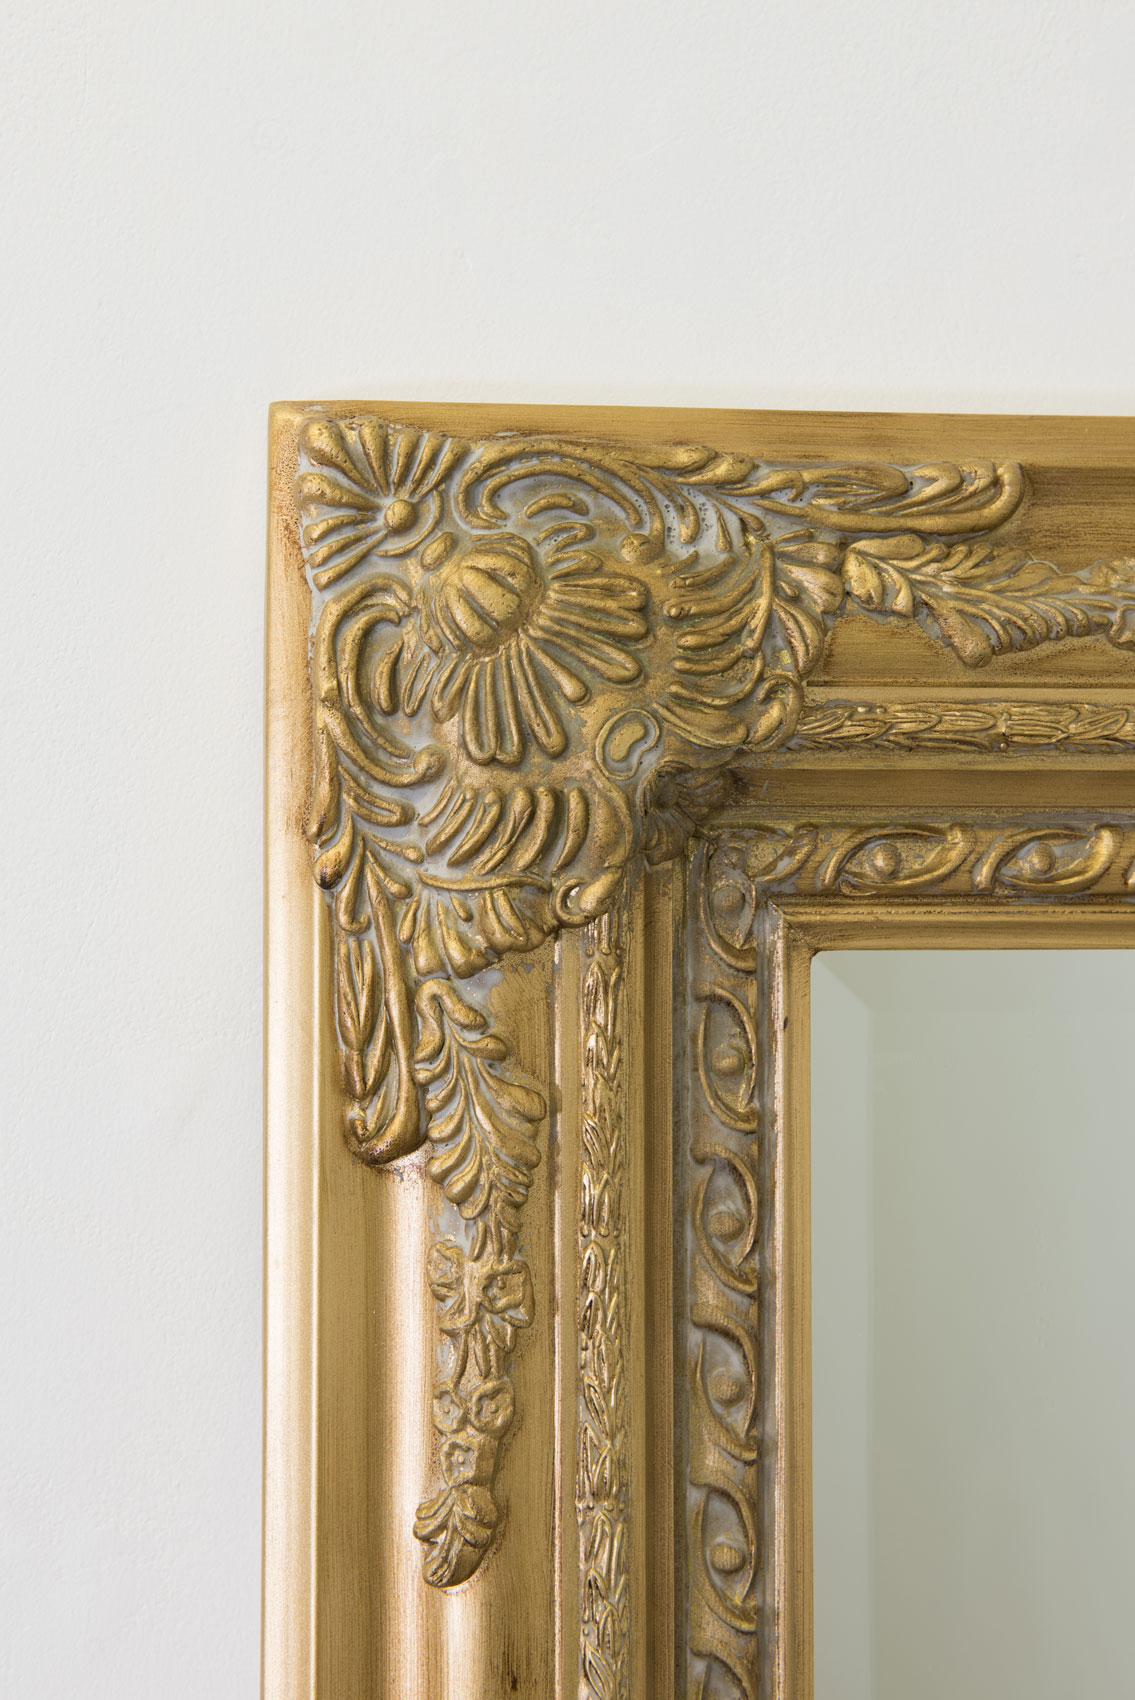 Large gold antique style wall mirror wood 5ft10 x 2ft10 for Antique style wall mirror